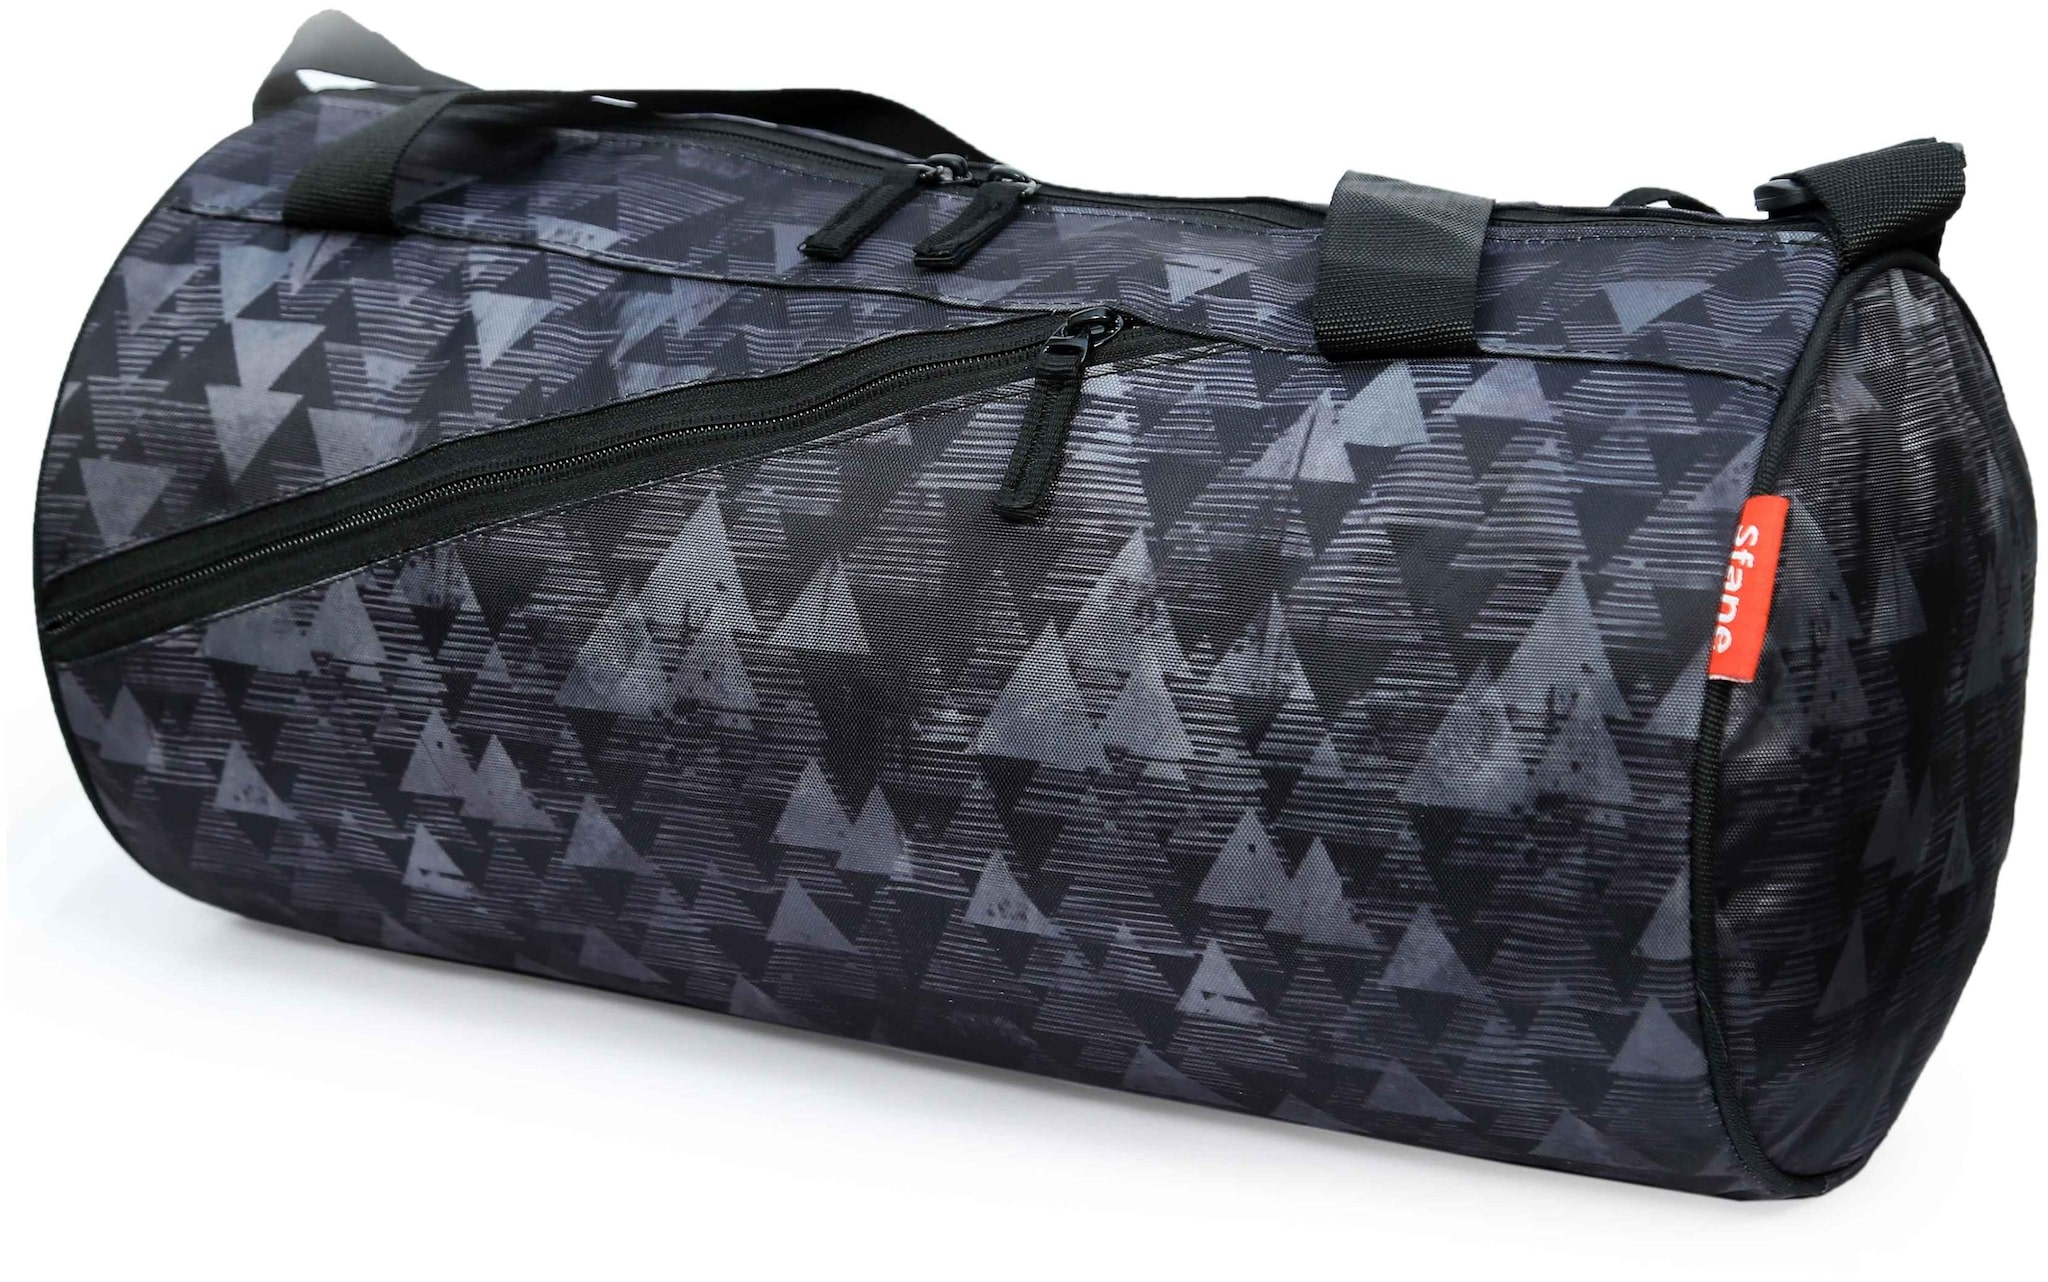 c9db1660c3 Buy SFANE Polyester Men Gym Bag   Duffle Bag - Grey   Black Online at Low  Prices in India - Paytmmall.com